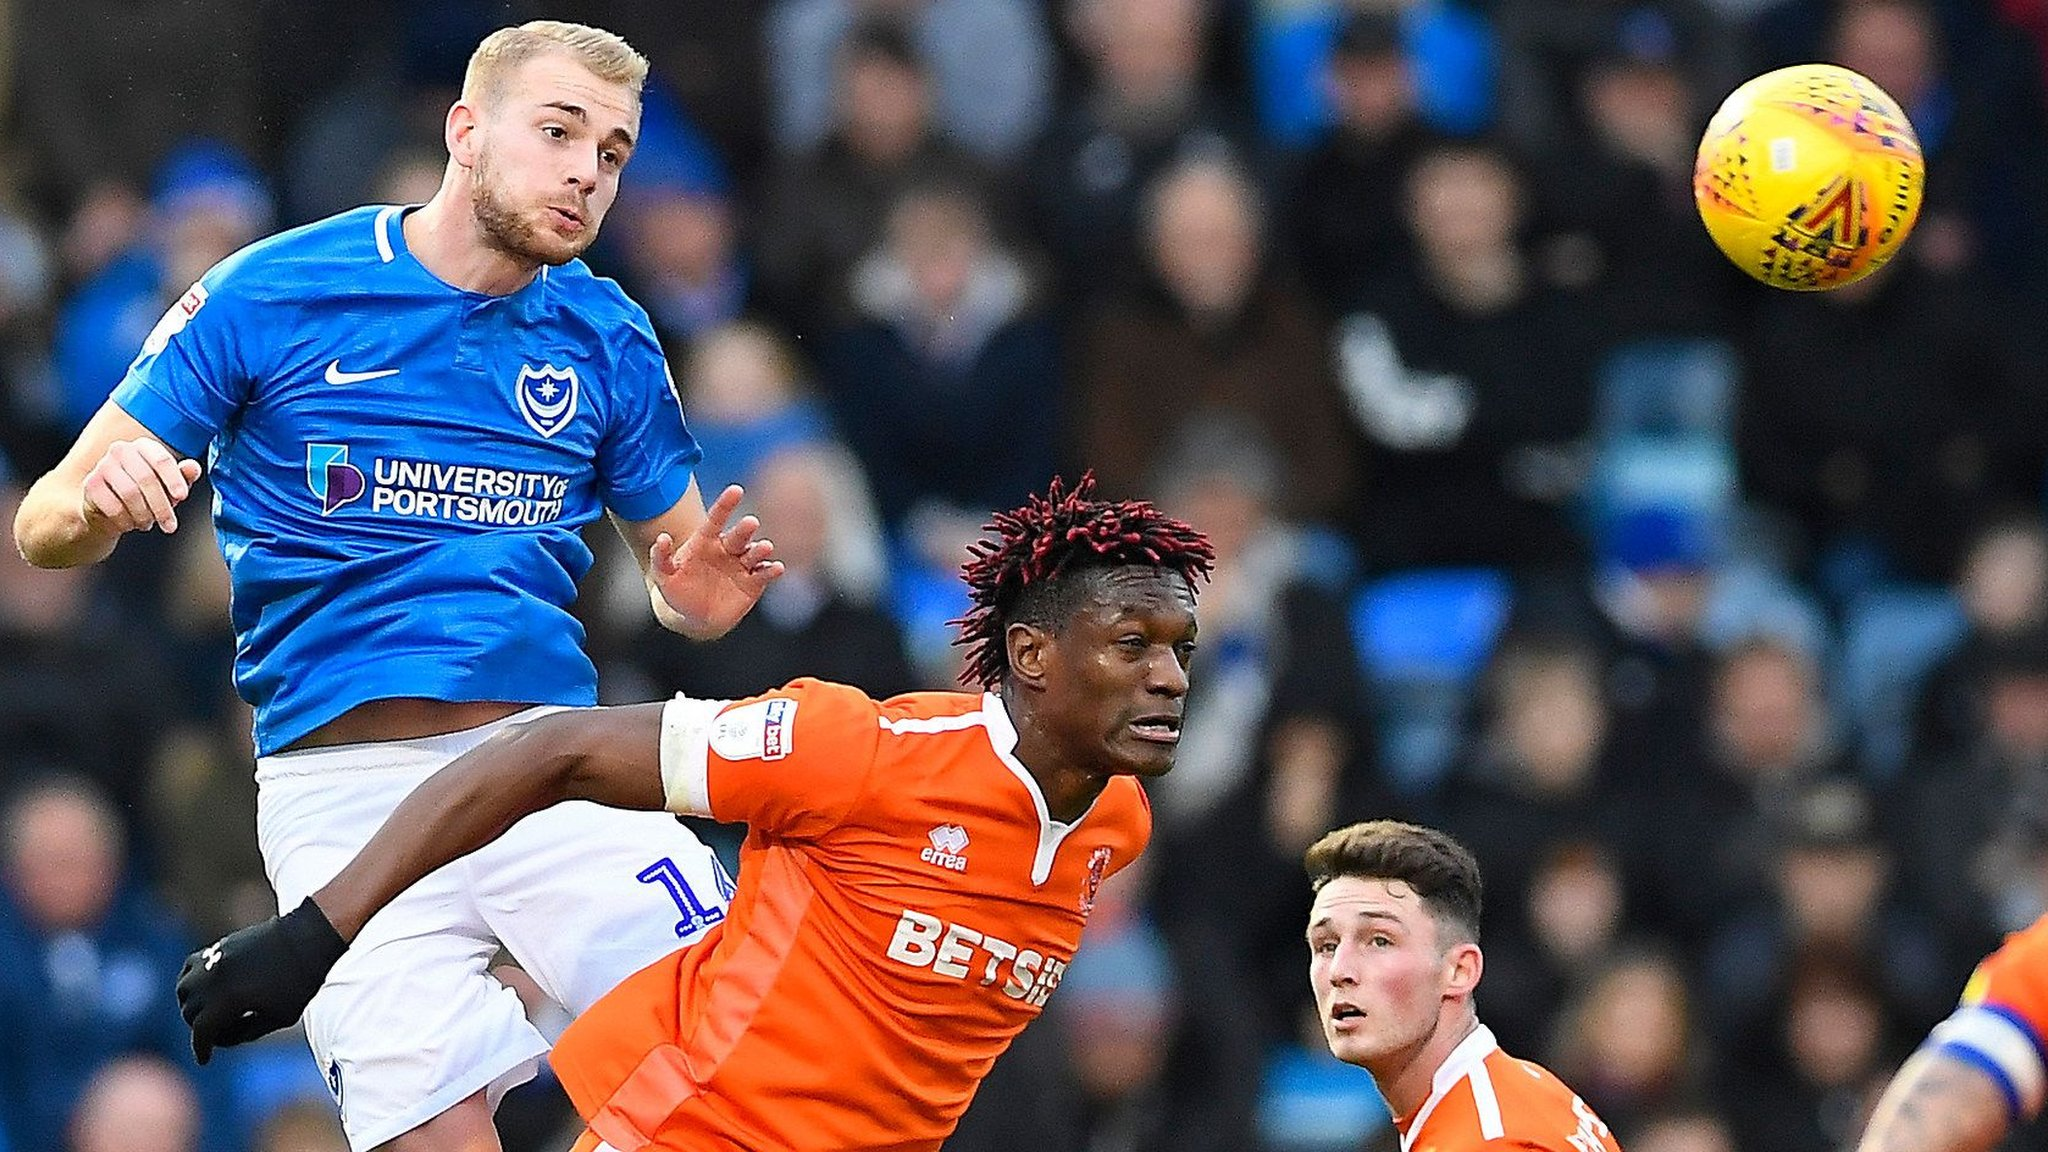 Jack Whatmough: Portsmouth defender signs new contact until 2021